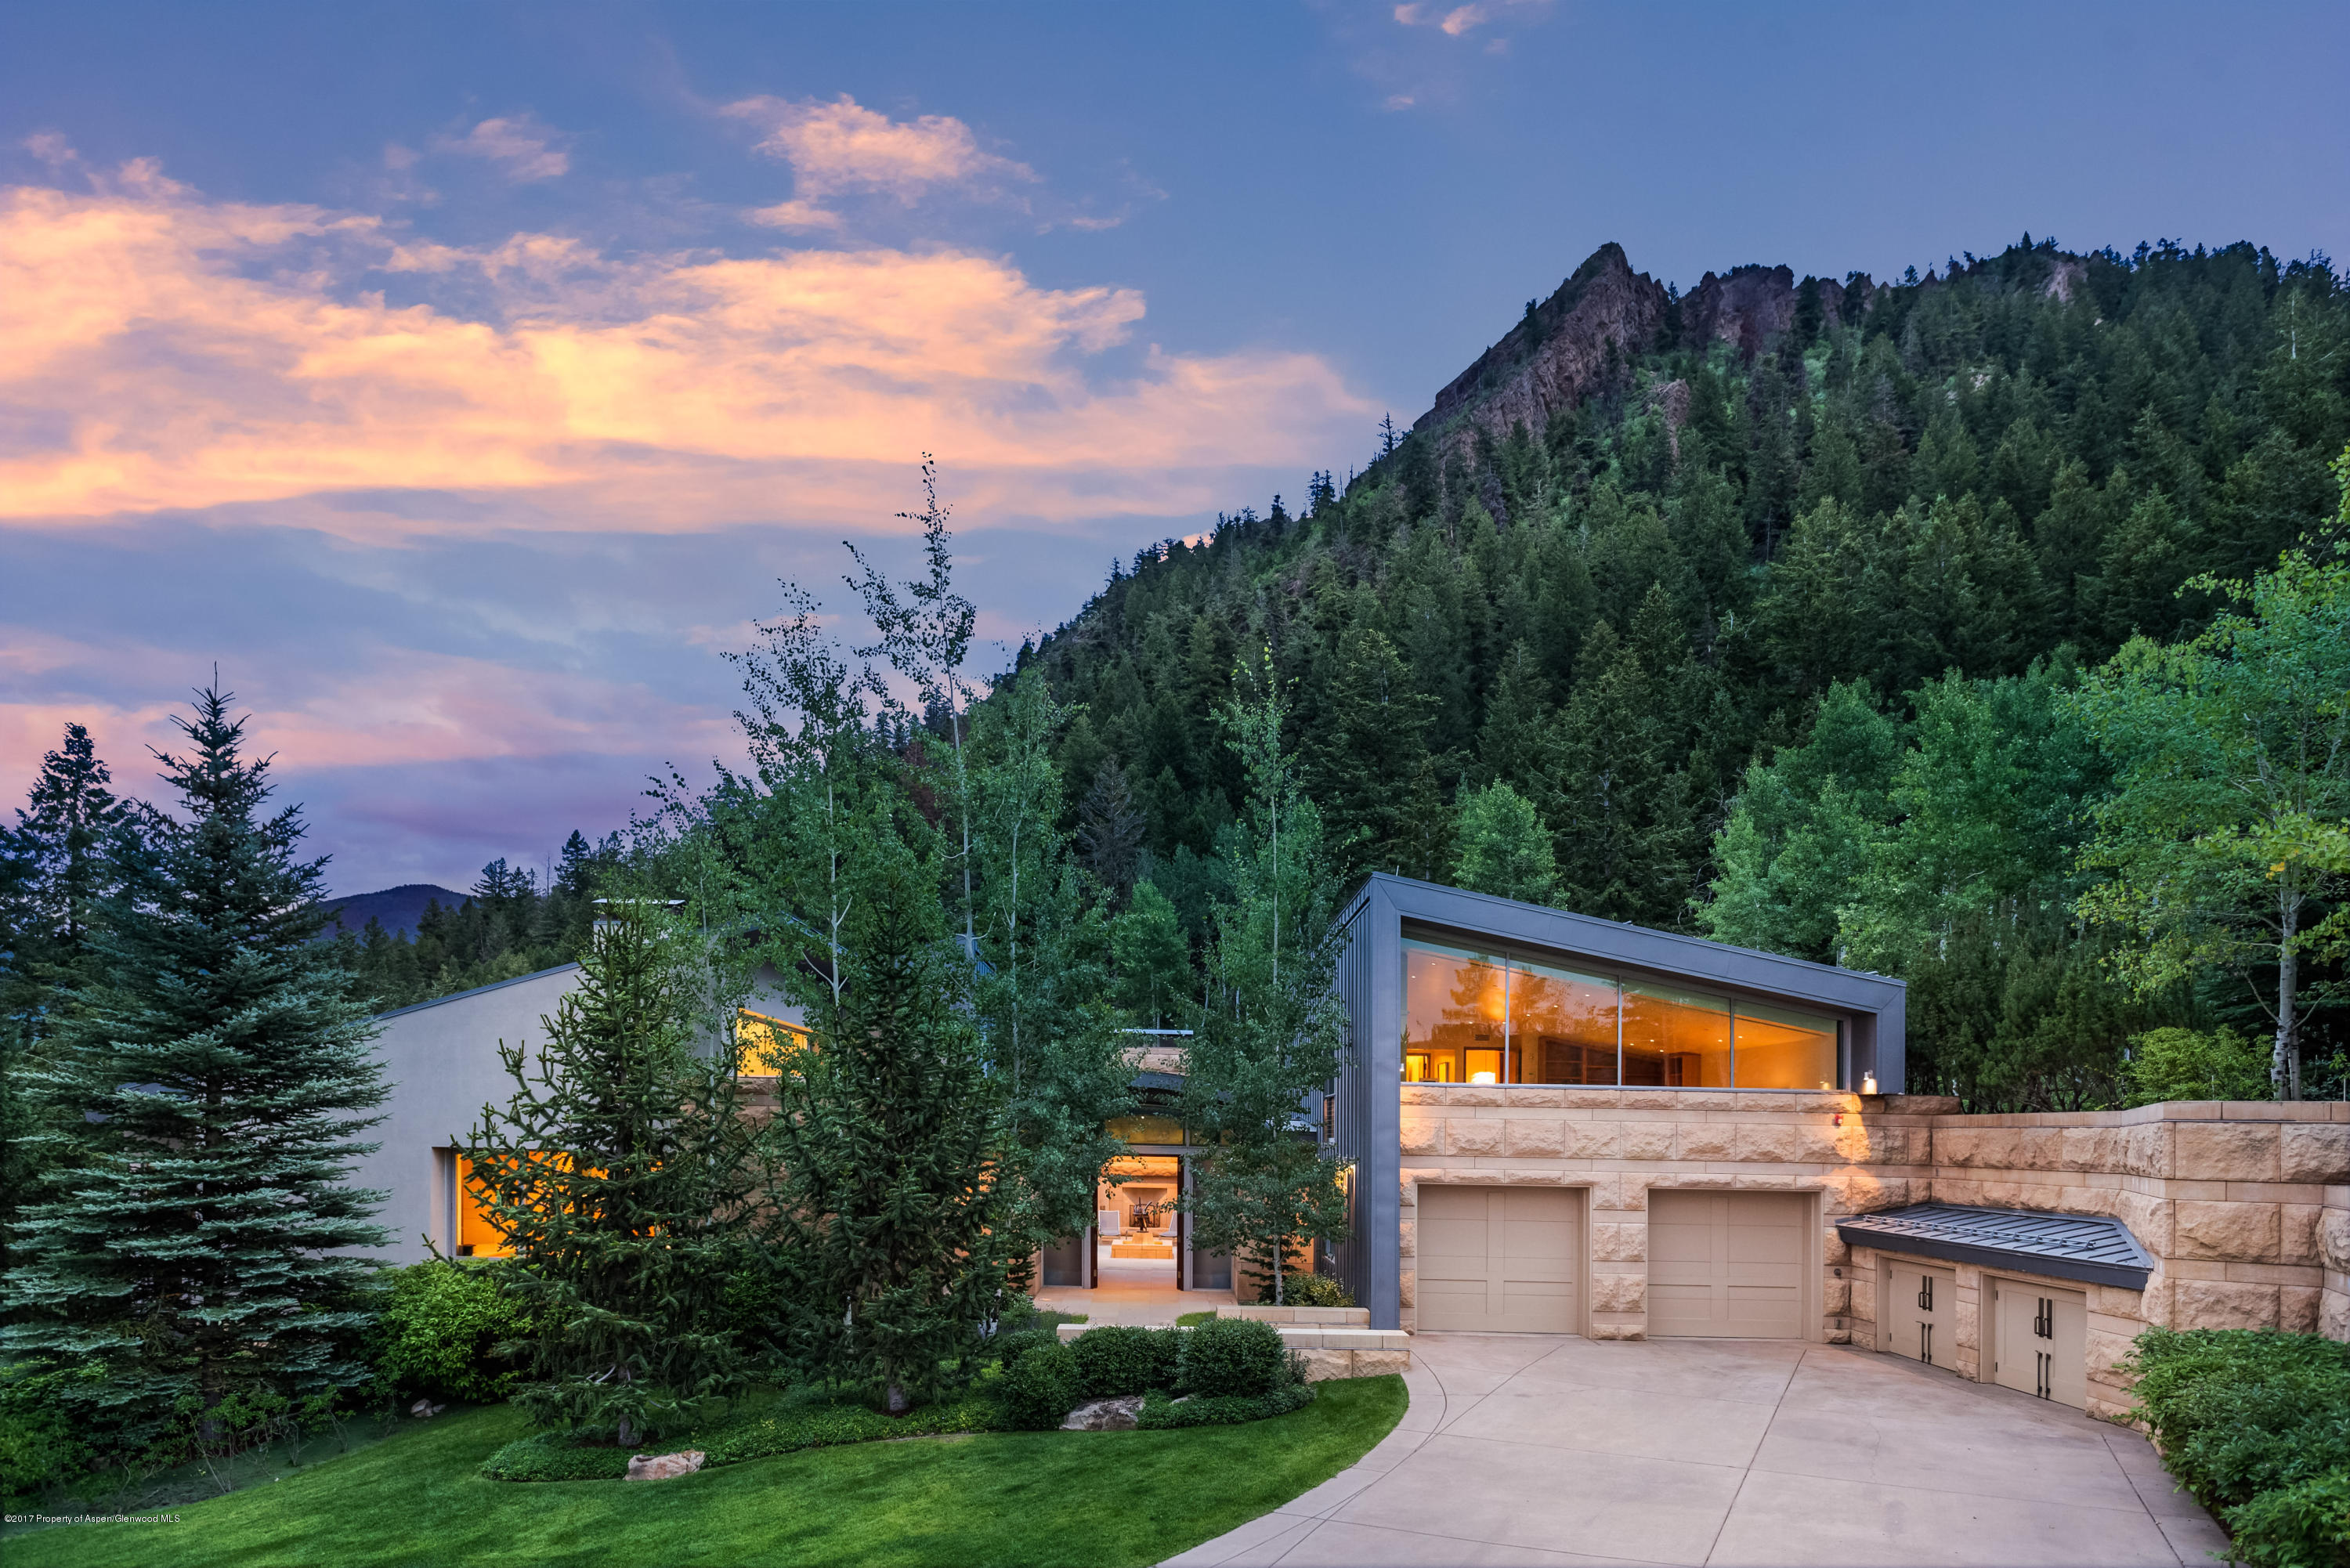 5 Toby Lane - West End, Colorado